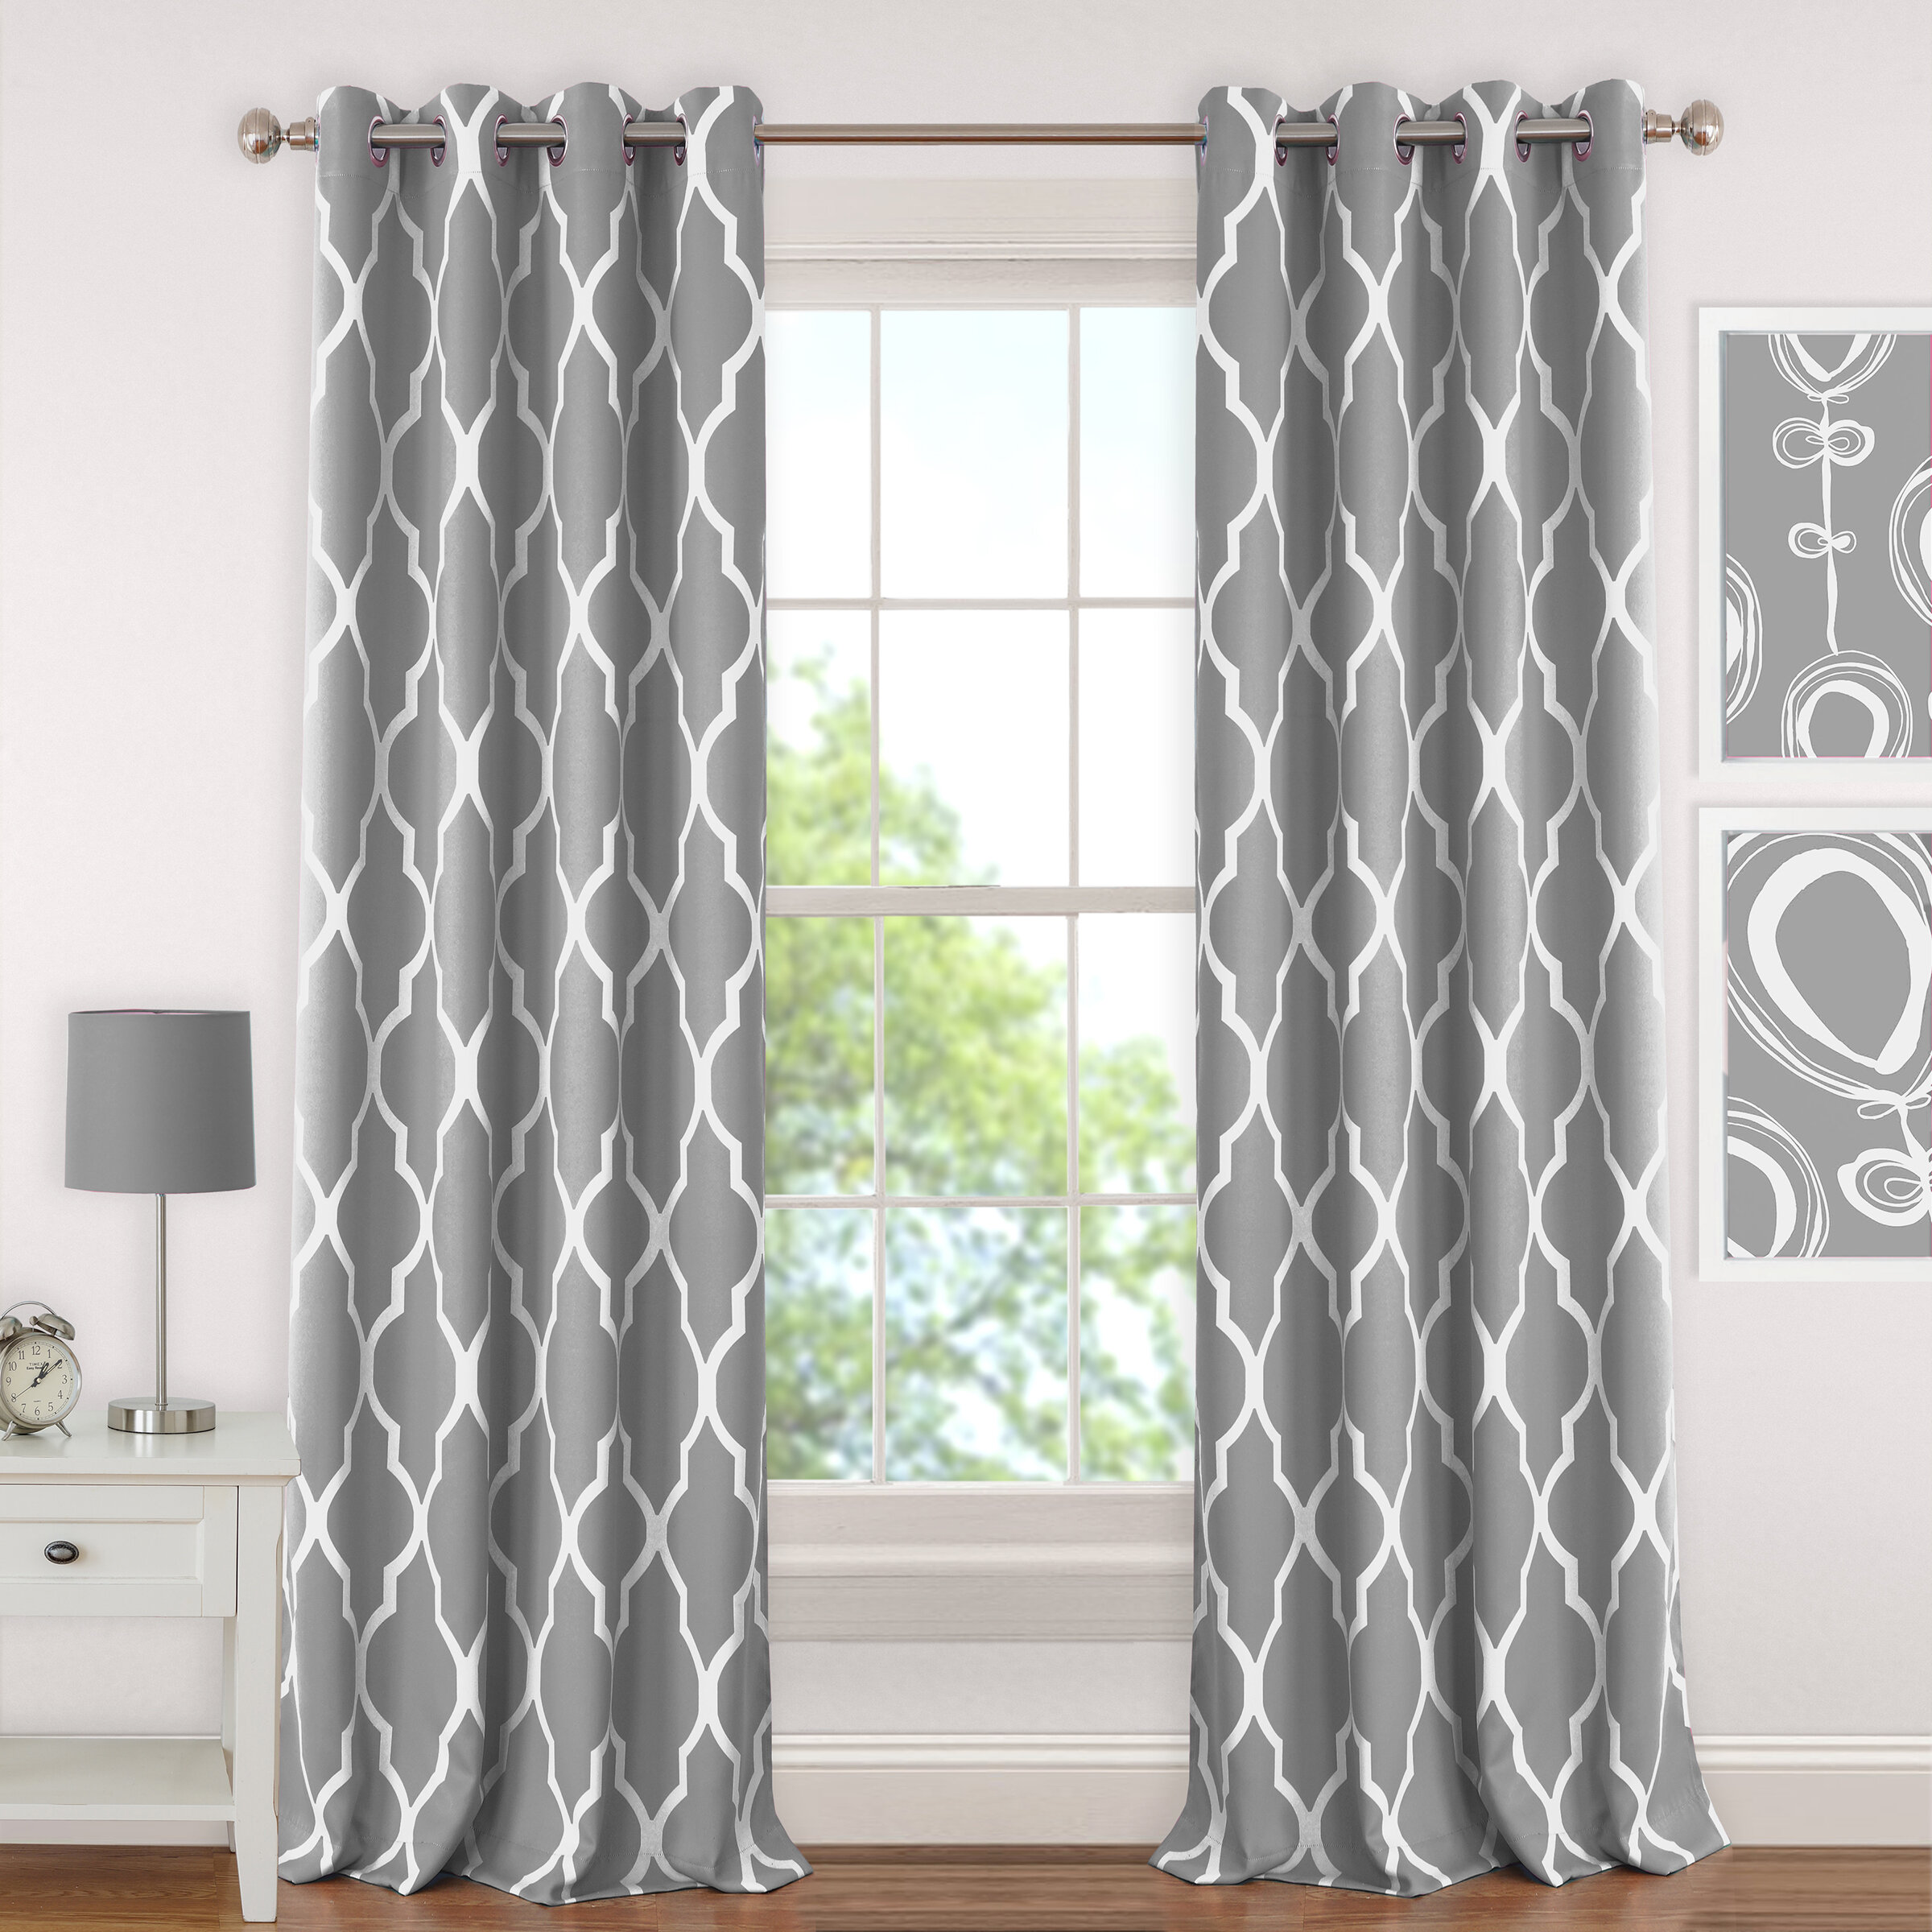 large dipped full design panels coral sea curtain etsy double curtains of size ombre elegant on